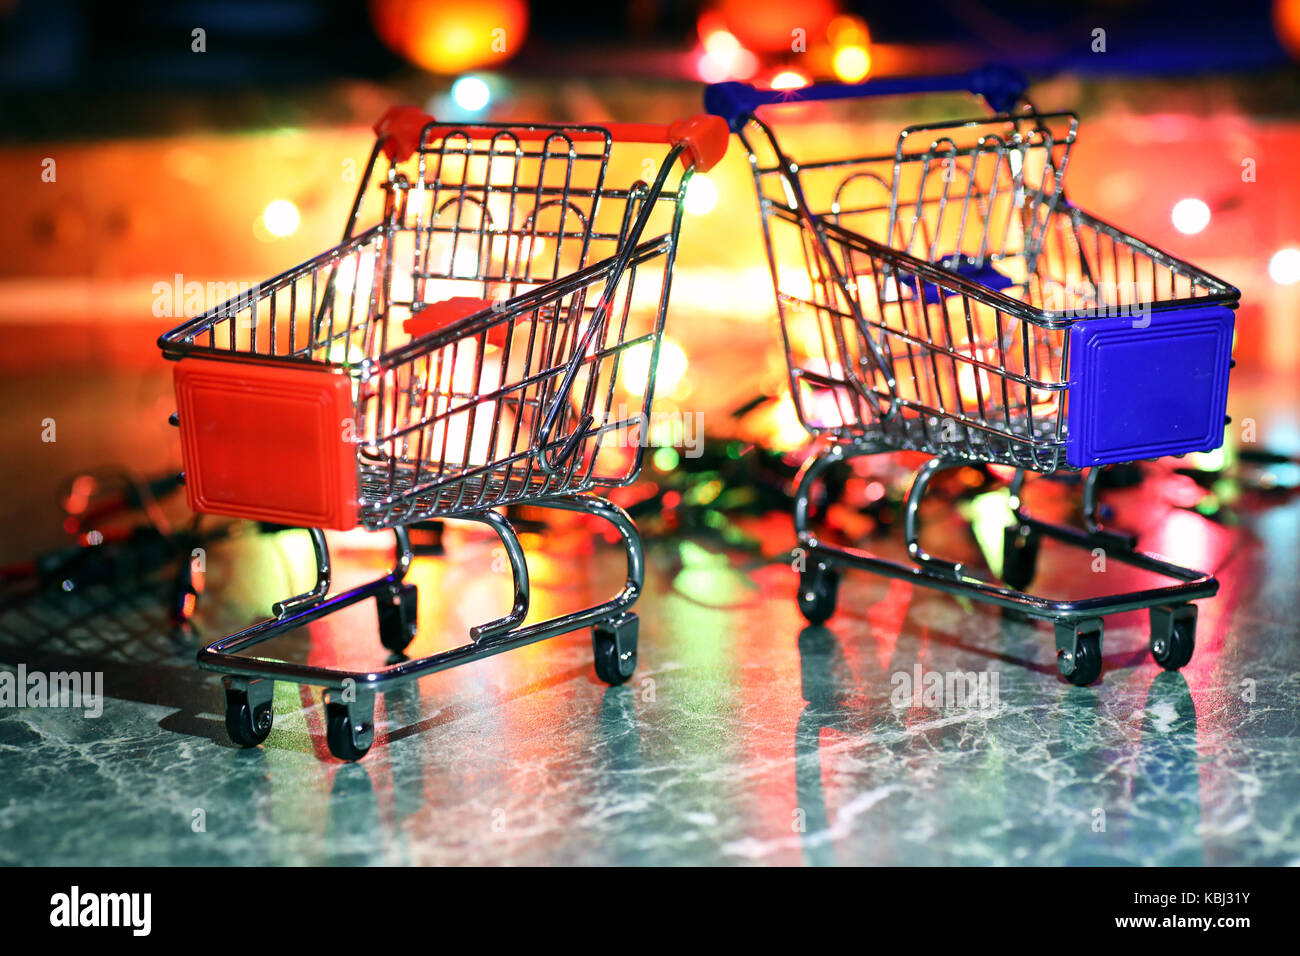 metal supermarket small cart on a background colored lights Stock Photo